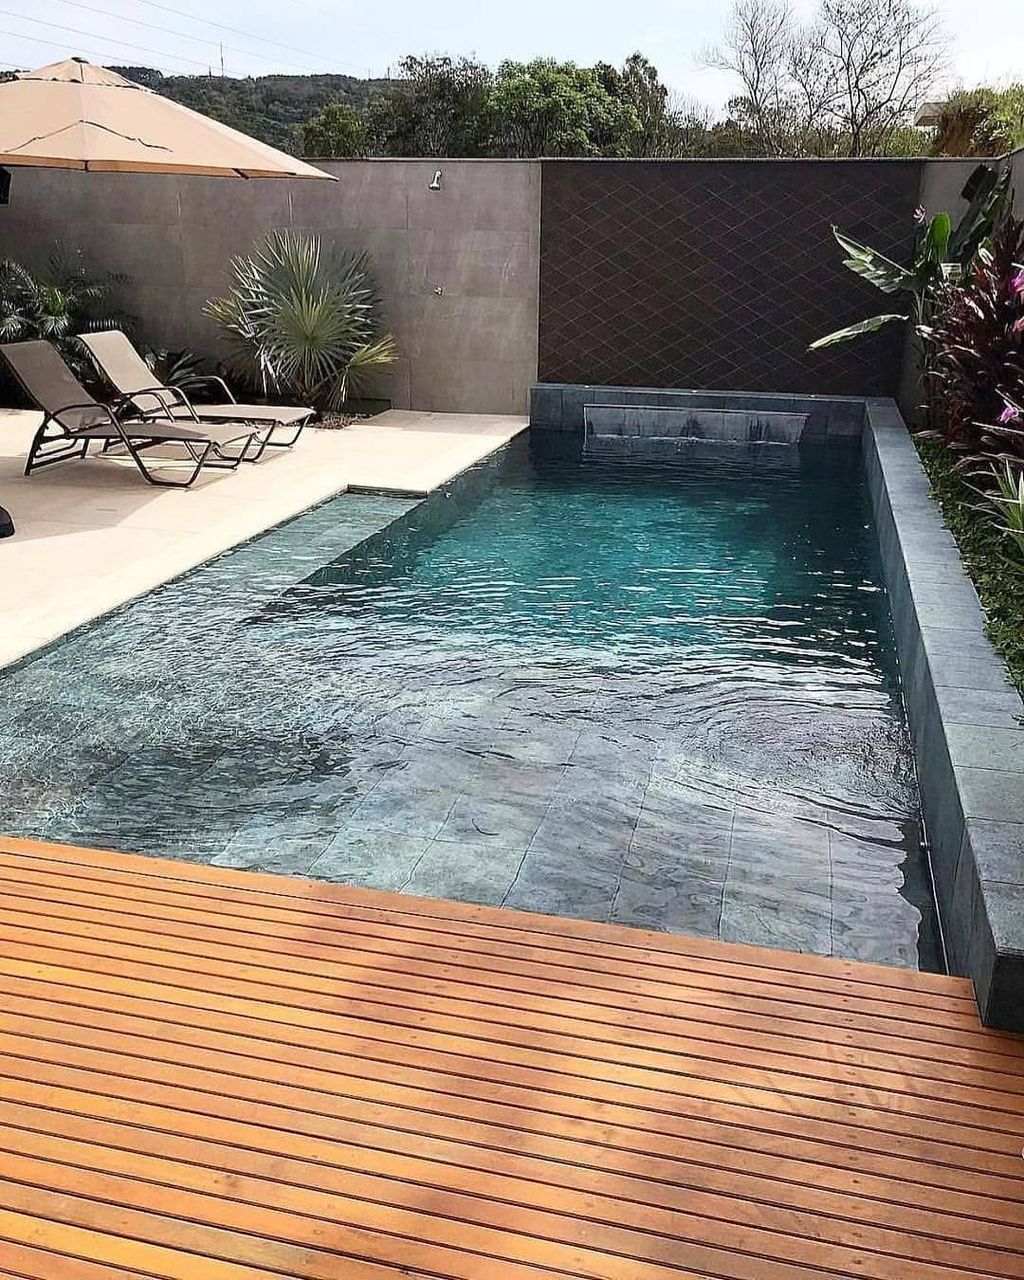 Ideas For Getting New Outside Swimming Pools In 2020 Cool Swimming Pools Small Pool Design Rectangular Swimming Pools